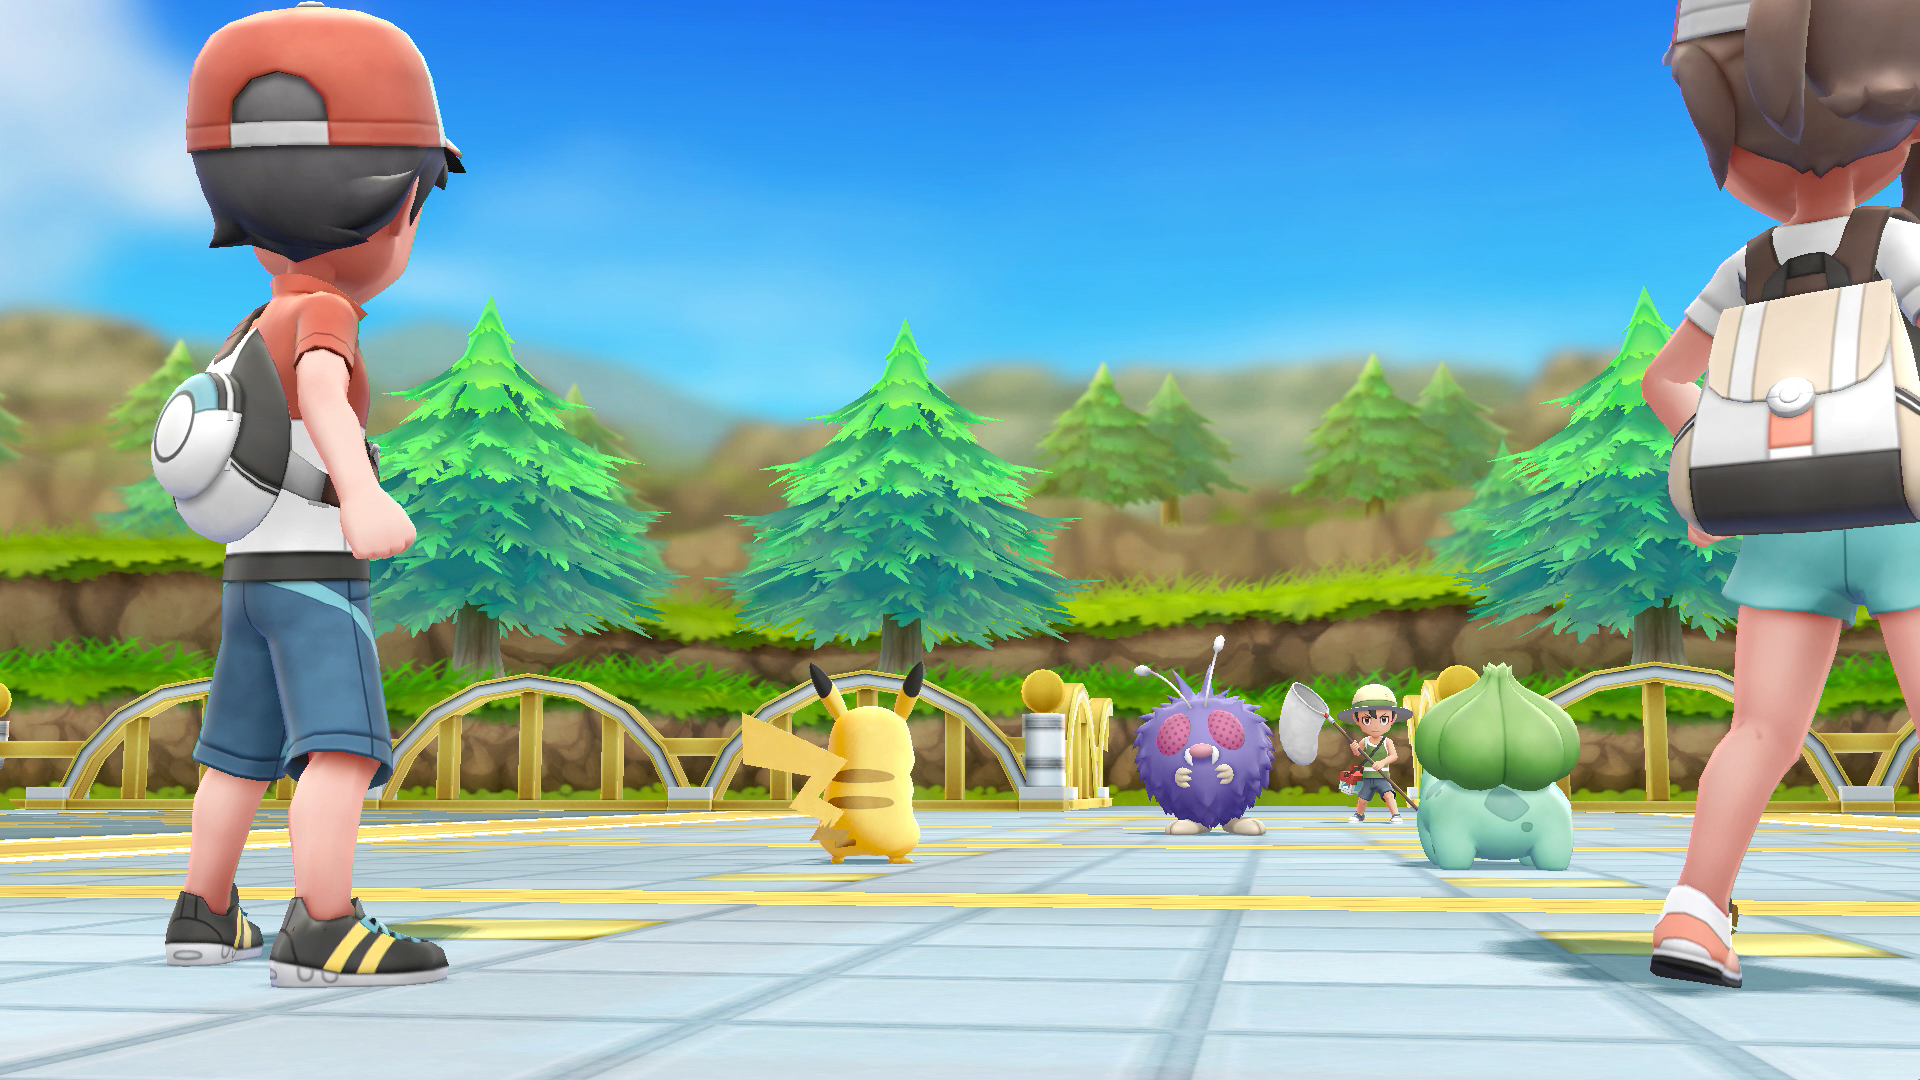 Better Graphics... FINALLY! -    On September 12, 1998,a little game called 'ポケットモンスターピカチュウ' hit the Japanese market. Before you run to paste that phrase into google translate, it means 'Pocket Monsters Pikachu', which was some what of a sequel released on the Nintendo Gameboy after the success of Pokemon Red and Blue (Red and Green in Japan). On October 19, 1999 it was brought to North America and was know as 'Pokemon Yellow'. Very fitting, the game featured a gifted little electric mouse known as Pikachu as your starter, much like the main character 'Ash' from the Pokémon anime series.   Now, nearly 20 years later, we are getting a reimagined version of the game for Nintendo Switch. We hope the wait will be worth it! From the 4 color, pea-green Gameboy screen, to the 720p Nintendo Switch handheld screen will be the upgrade we have been wanting for years. Making the move from sprites to 3D rendered graphics seems like a move that should have been made years ago, but now that it's here, the Switch is the perfect device for the task at hand.